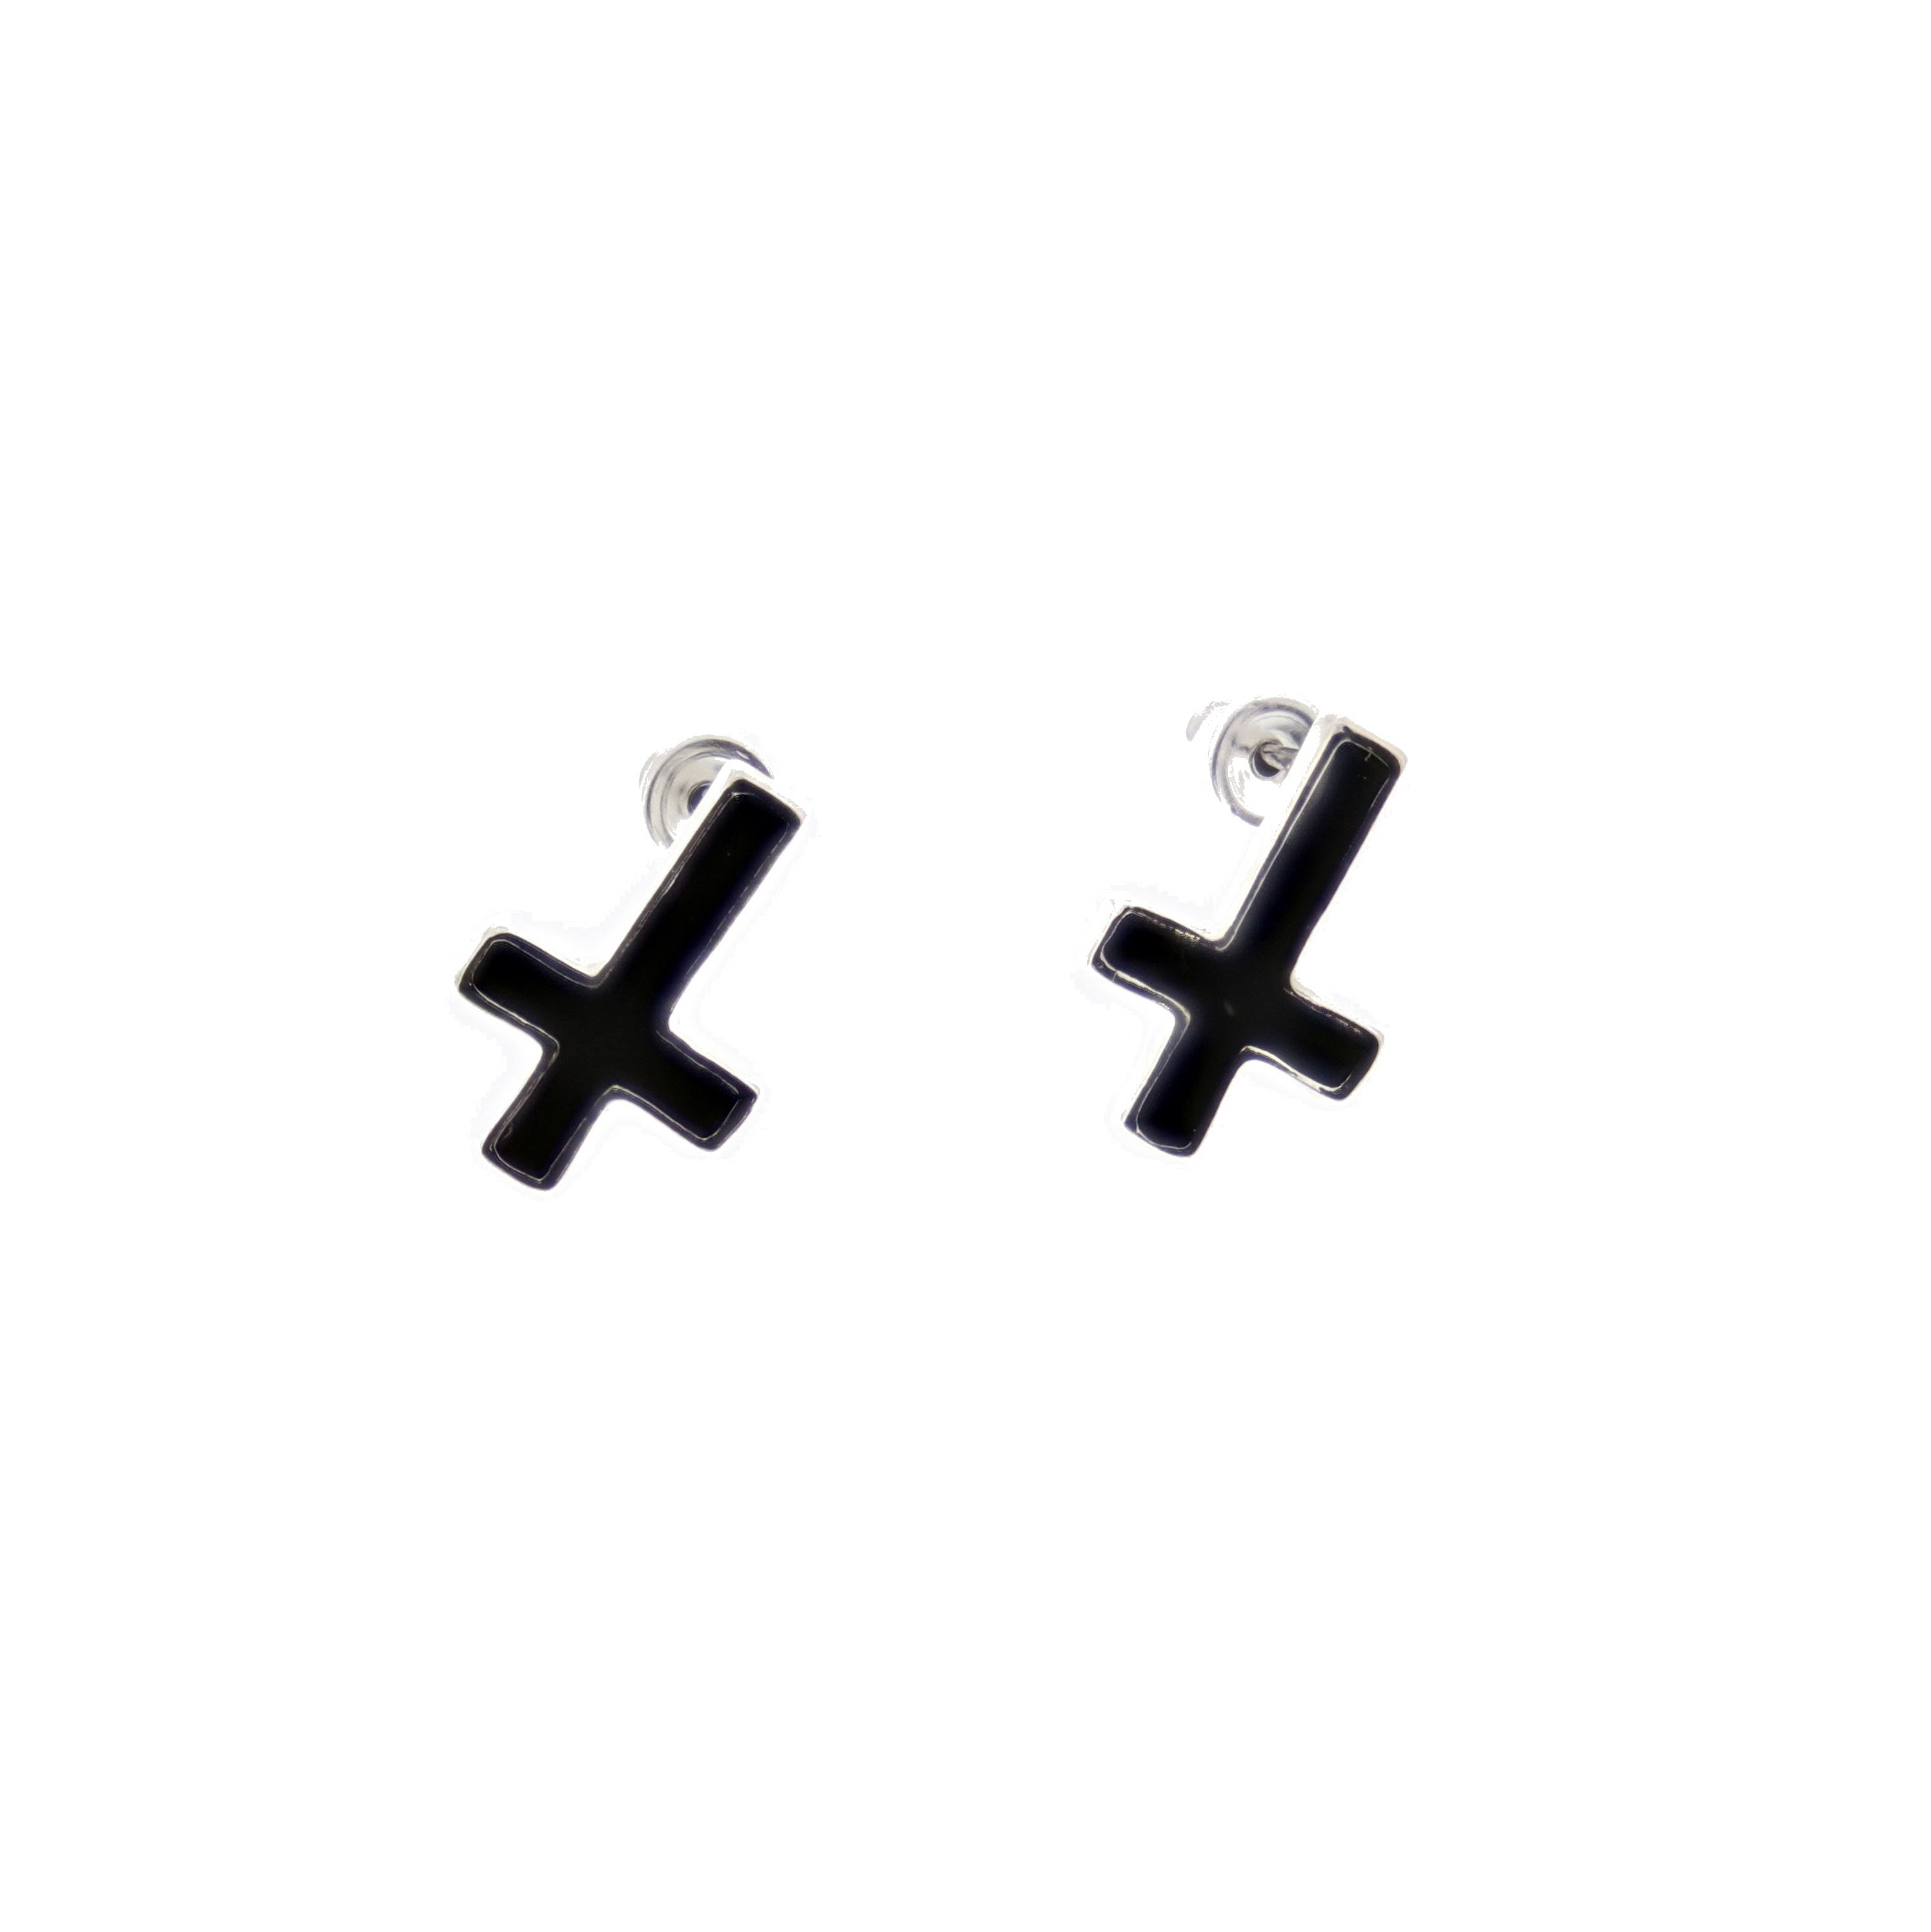 Zacs alter ego upside down black cross stud earrings ebay zacs alter ego upside down black cross stud earrings buycottarizona